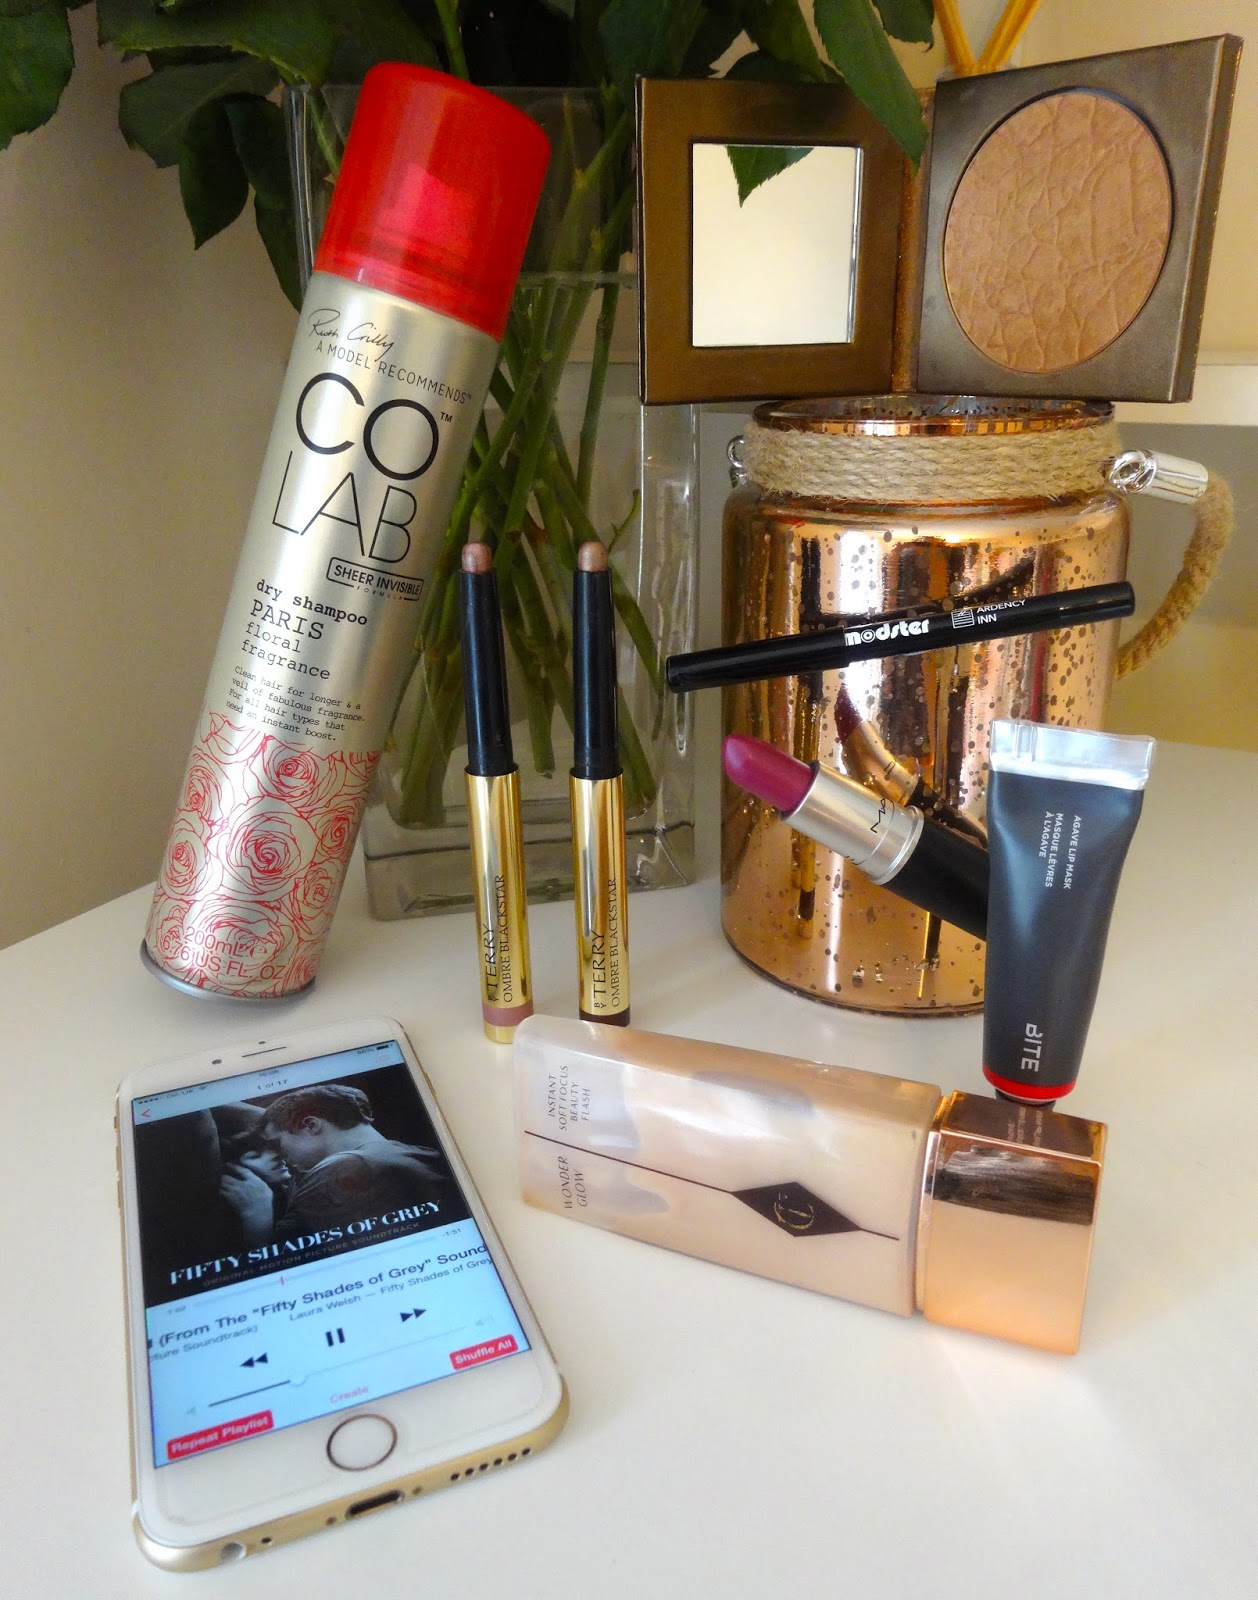 Colab dry shampoo Paris, By Terry Ombre blackstar, Ardency Inn modster eyeliner, Charlotte tilbury wonderglow, fifty shades of grey soundtrack,